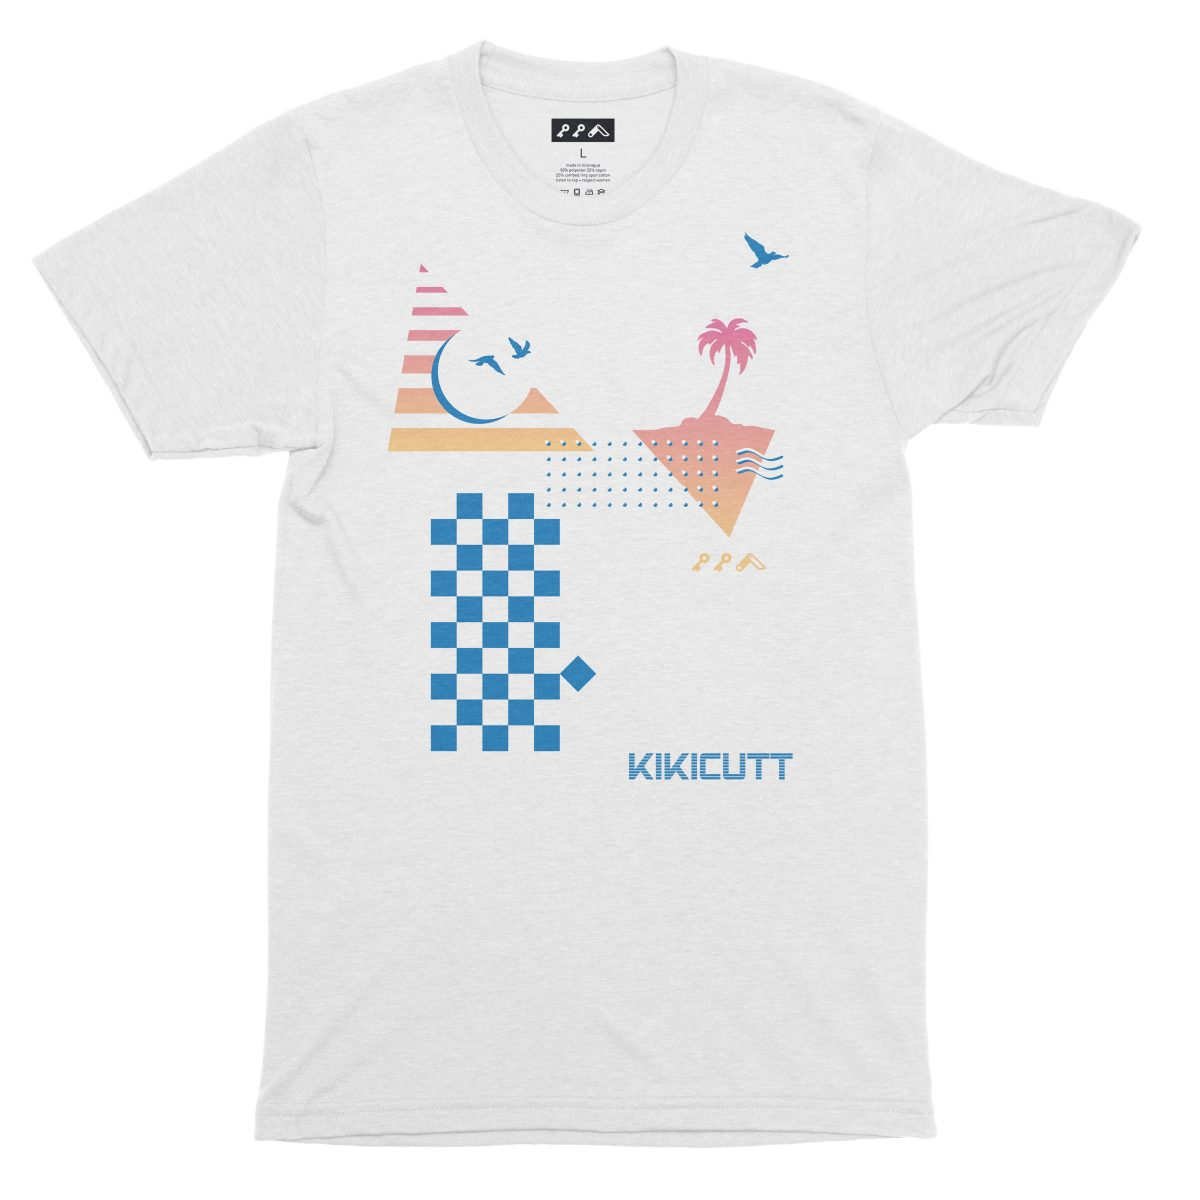 CHECKERED PAST retro throwback 80s style design graphic tee in white fleck